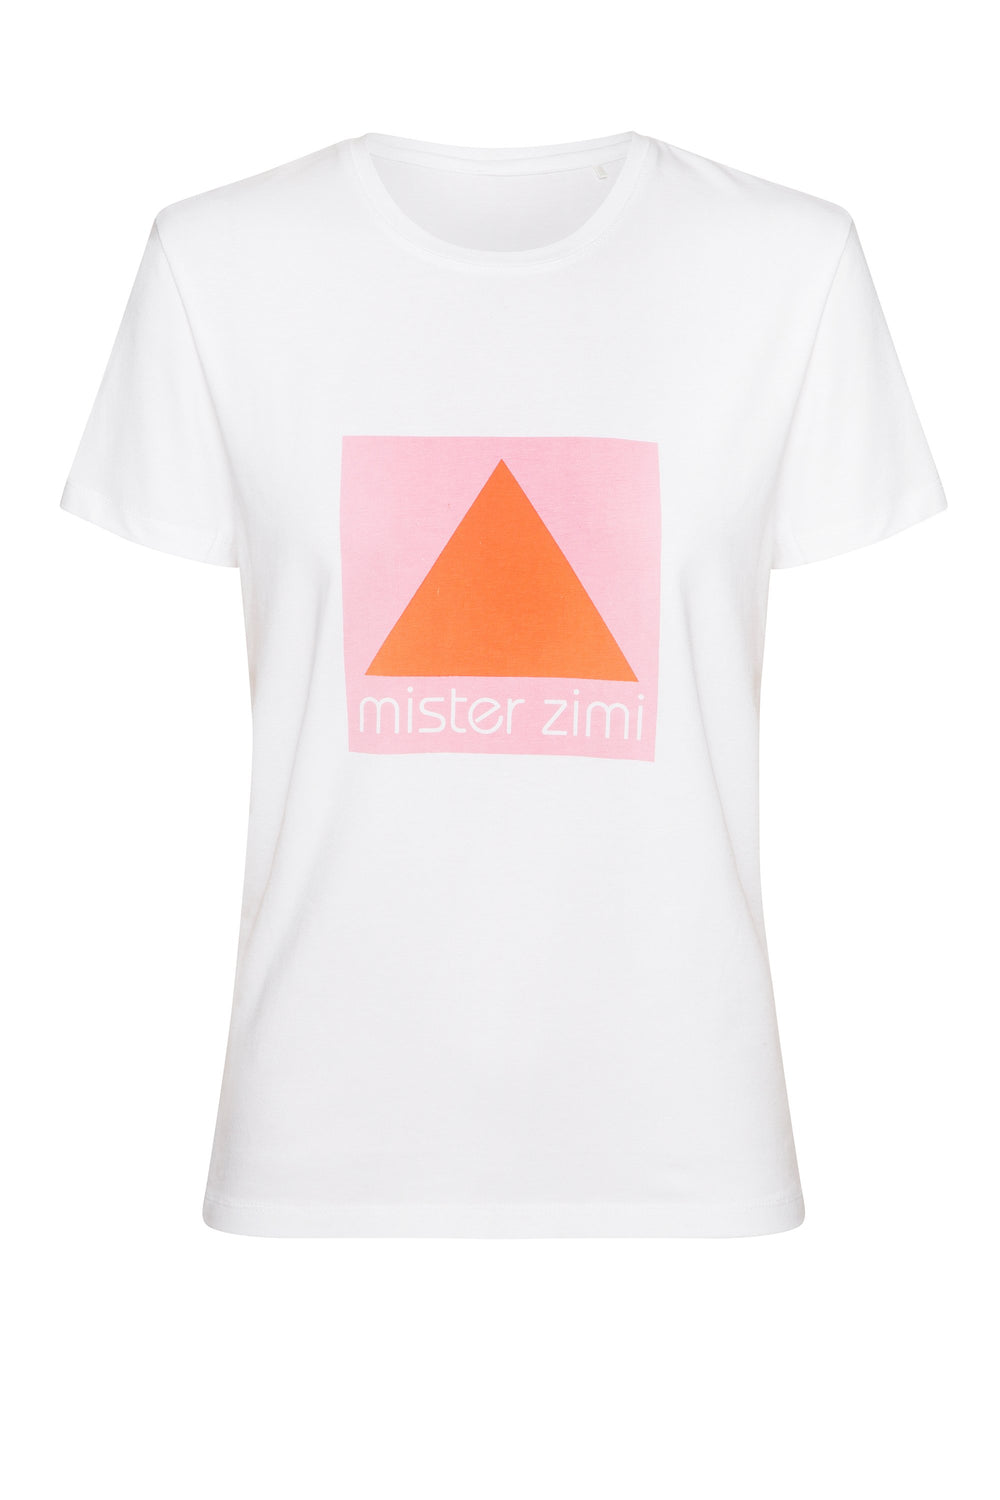 Zimi Tee In Pink